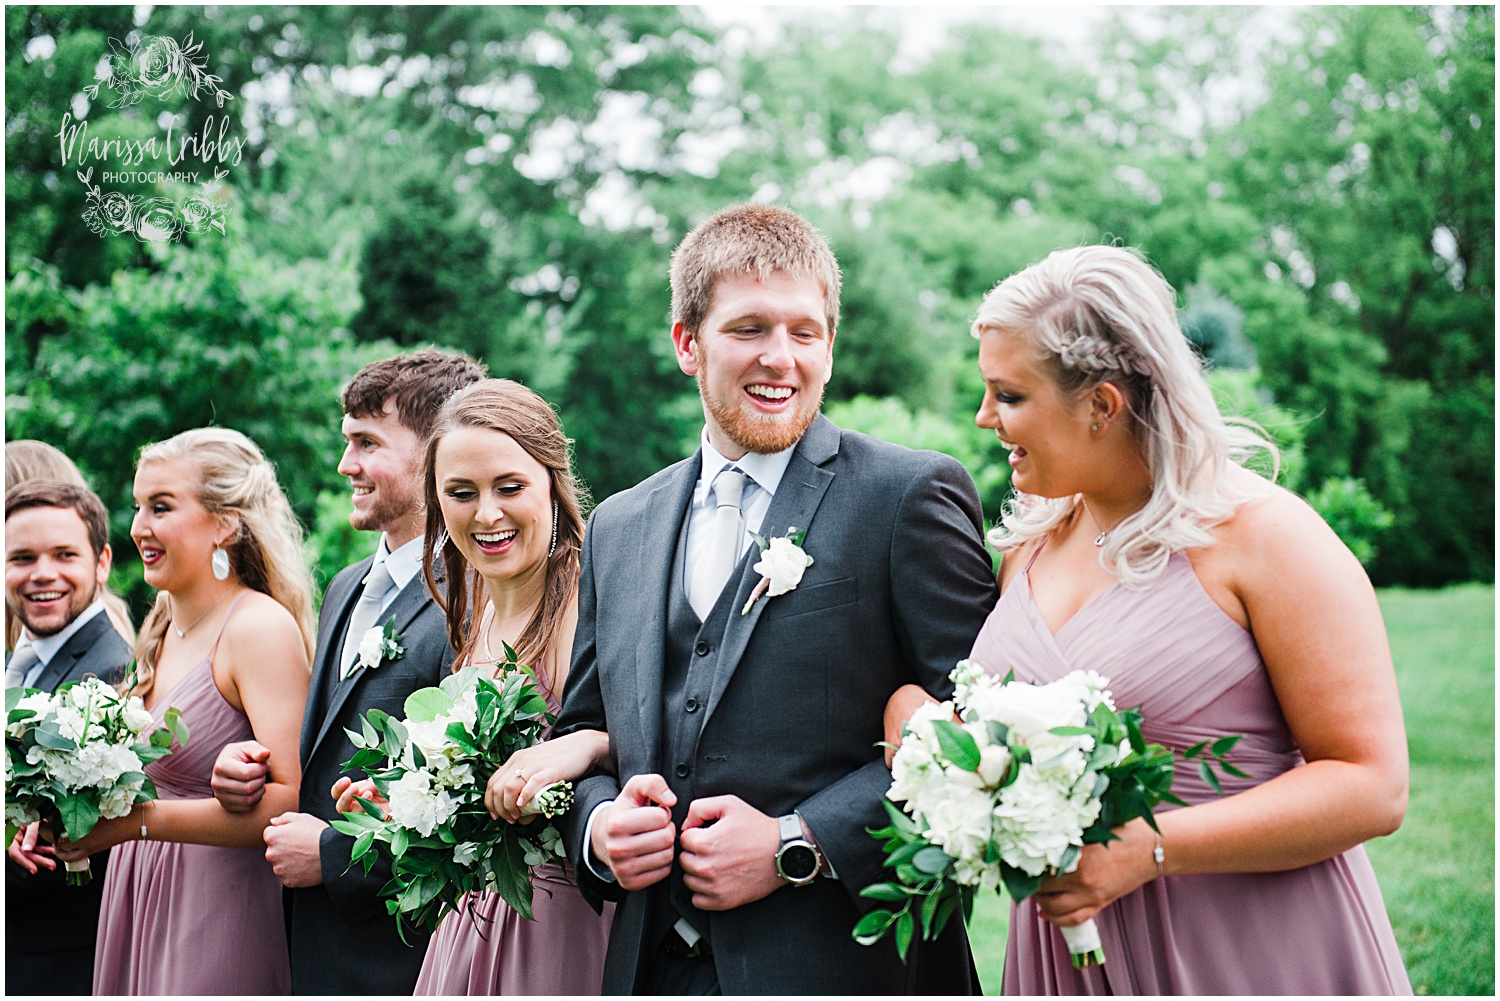 BEKAH & CHRIS MARRIED BLOG | 1890 EVENT SPACE WEDDING | MARISSA CRIBBS PHOTOGRAPHY_8402.jpg